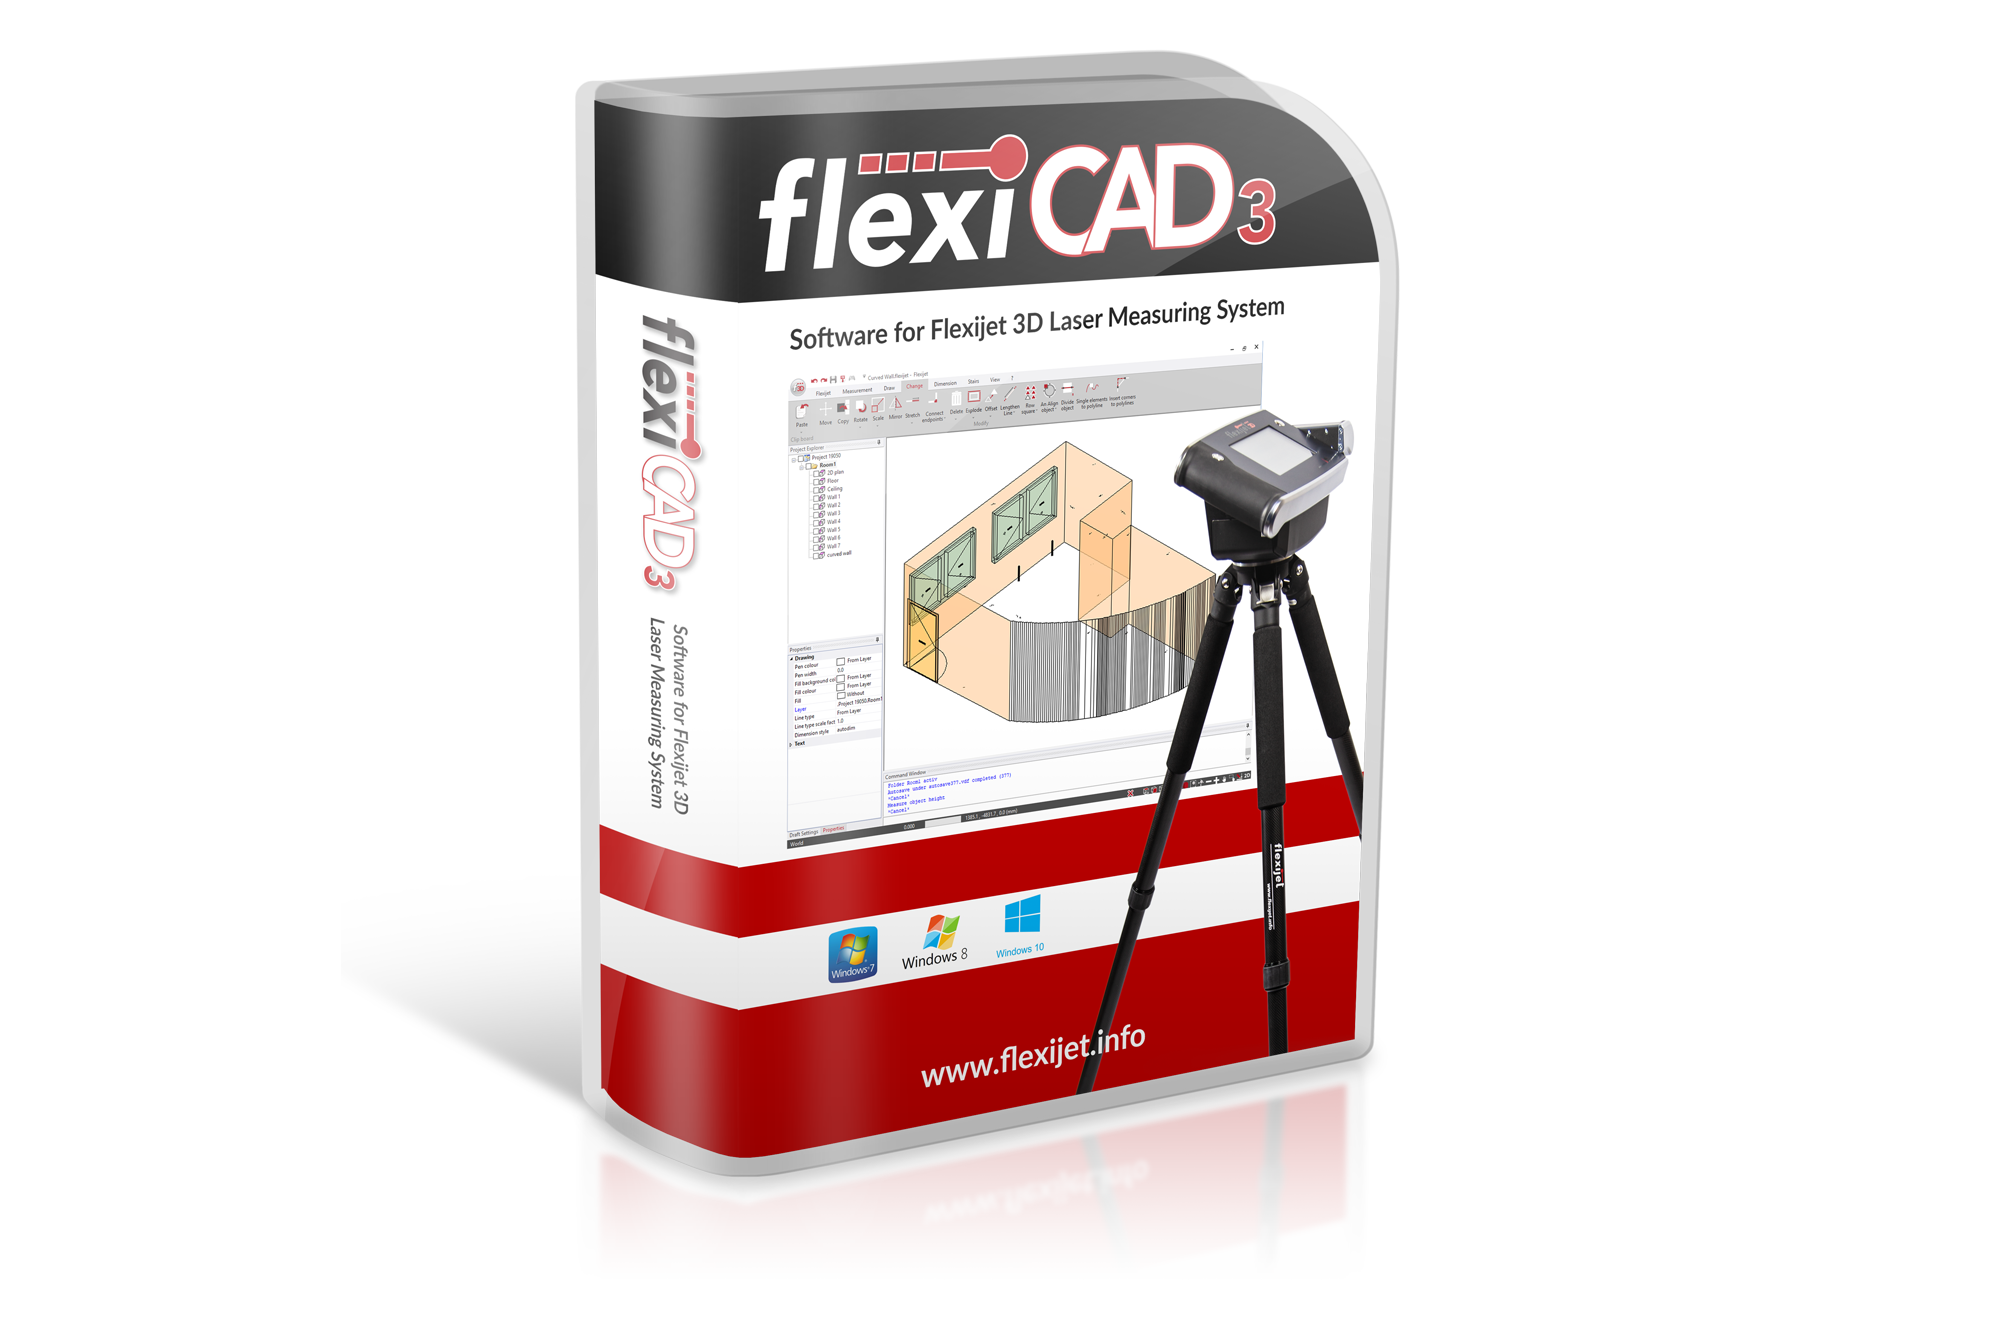 Illustrative image of package for FlexiCAD software.